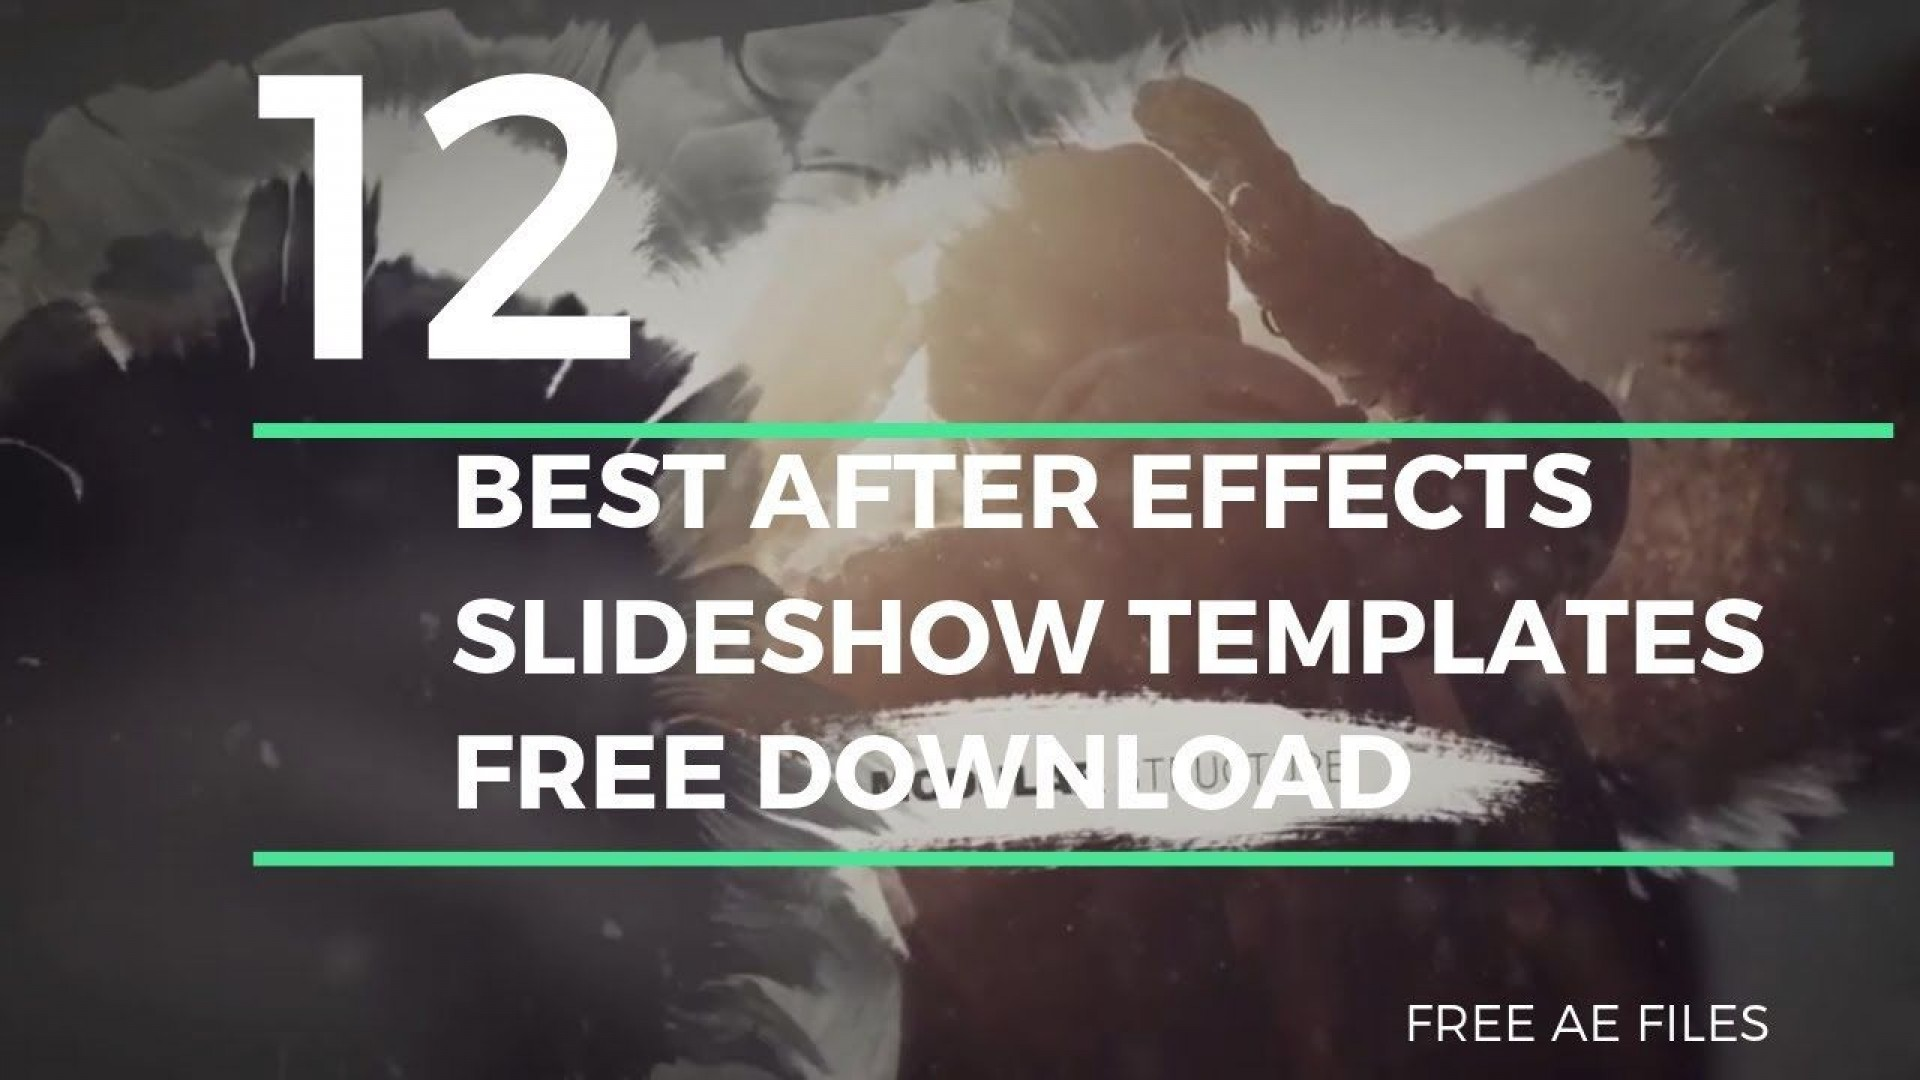 000 Exceptional Free Adobe After Effect Template Slideshow Example  Photo Download Wedding1920